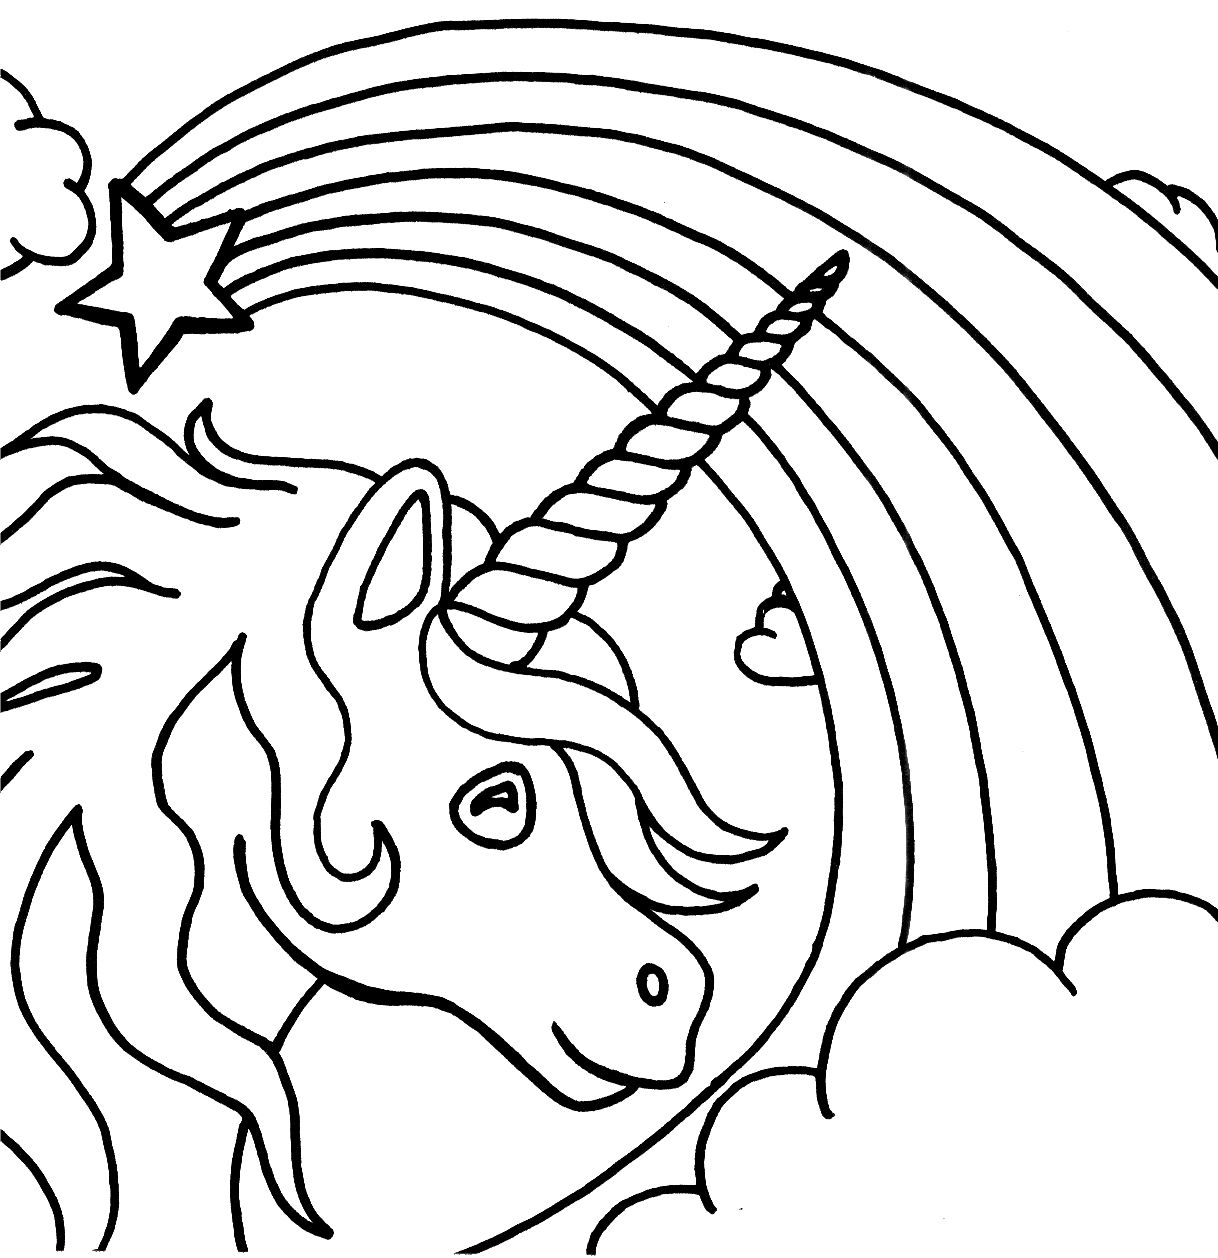 Free Printable Unicorn Coloring Pages For Kids Unicorn Coloring Pages Kids Printable Coloring Pages Free Printable Coloring Sheets